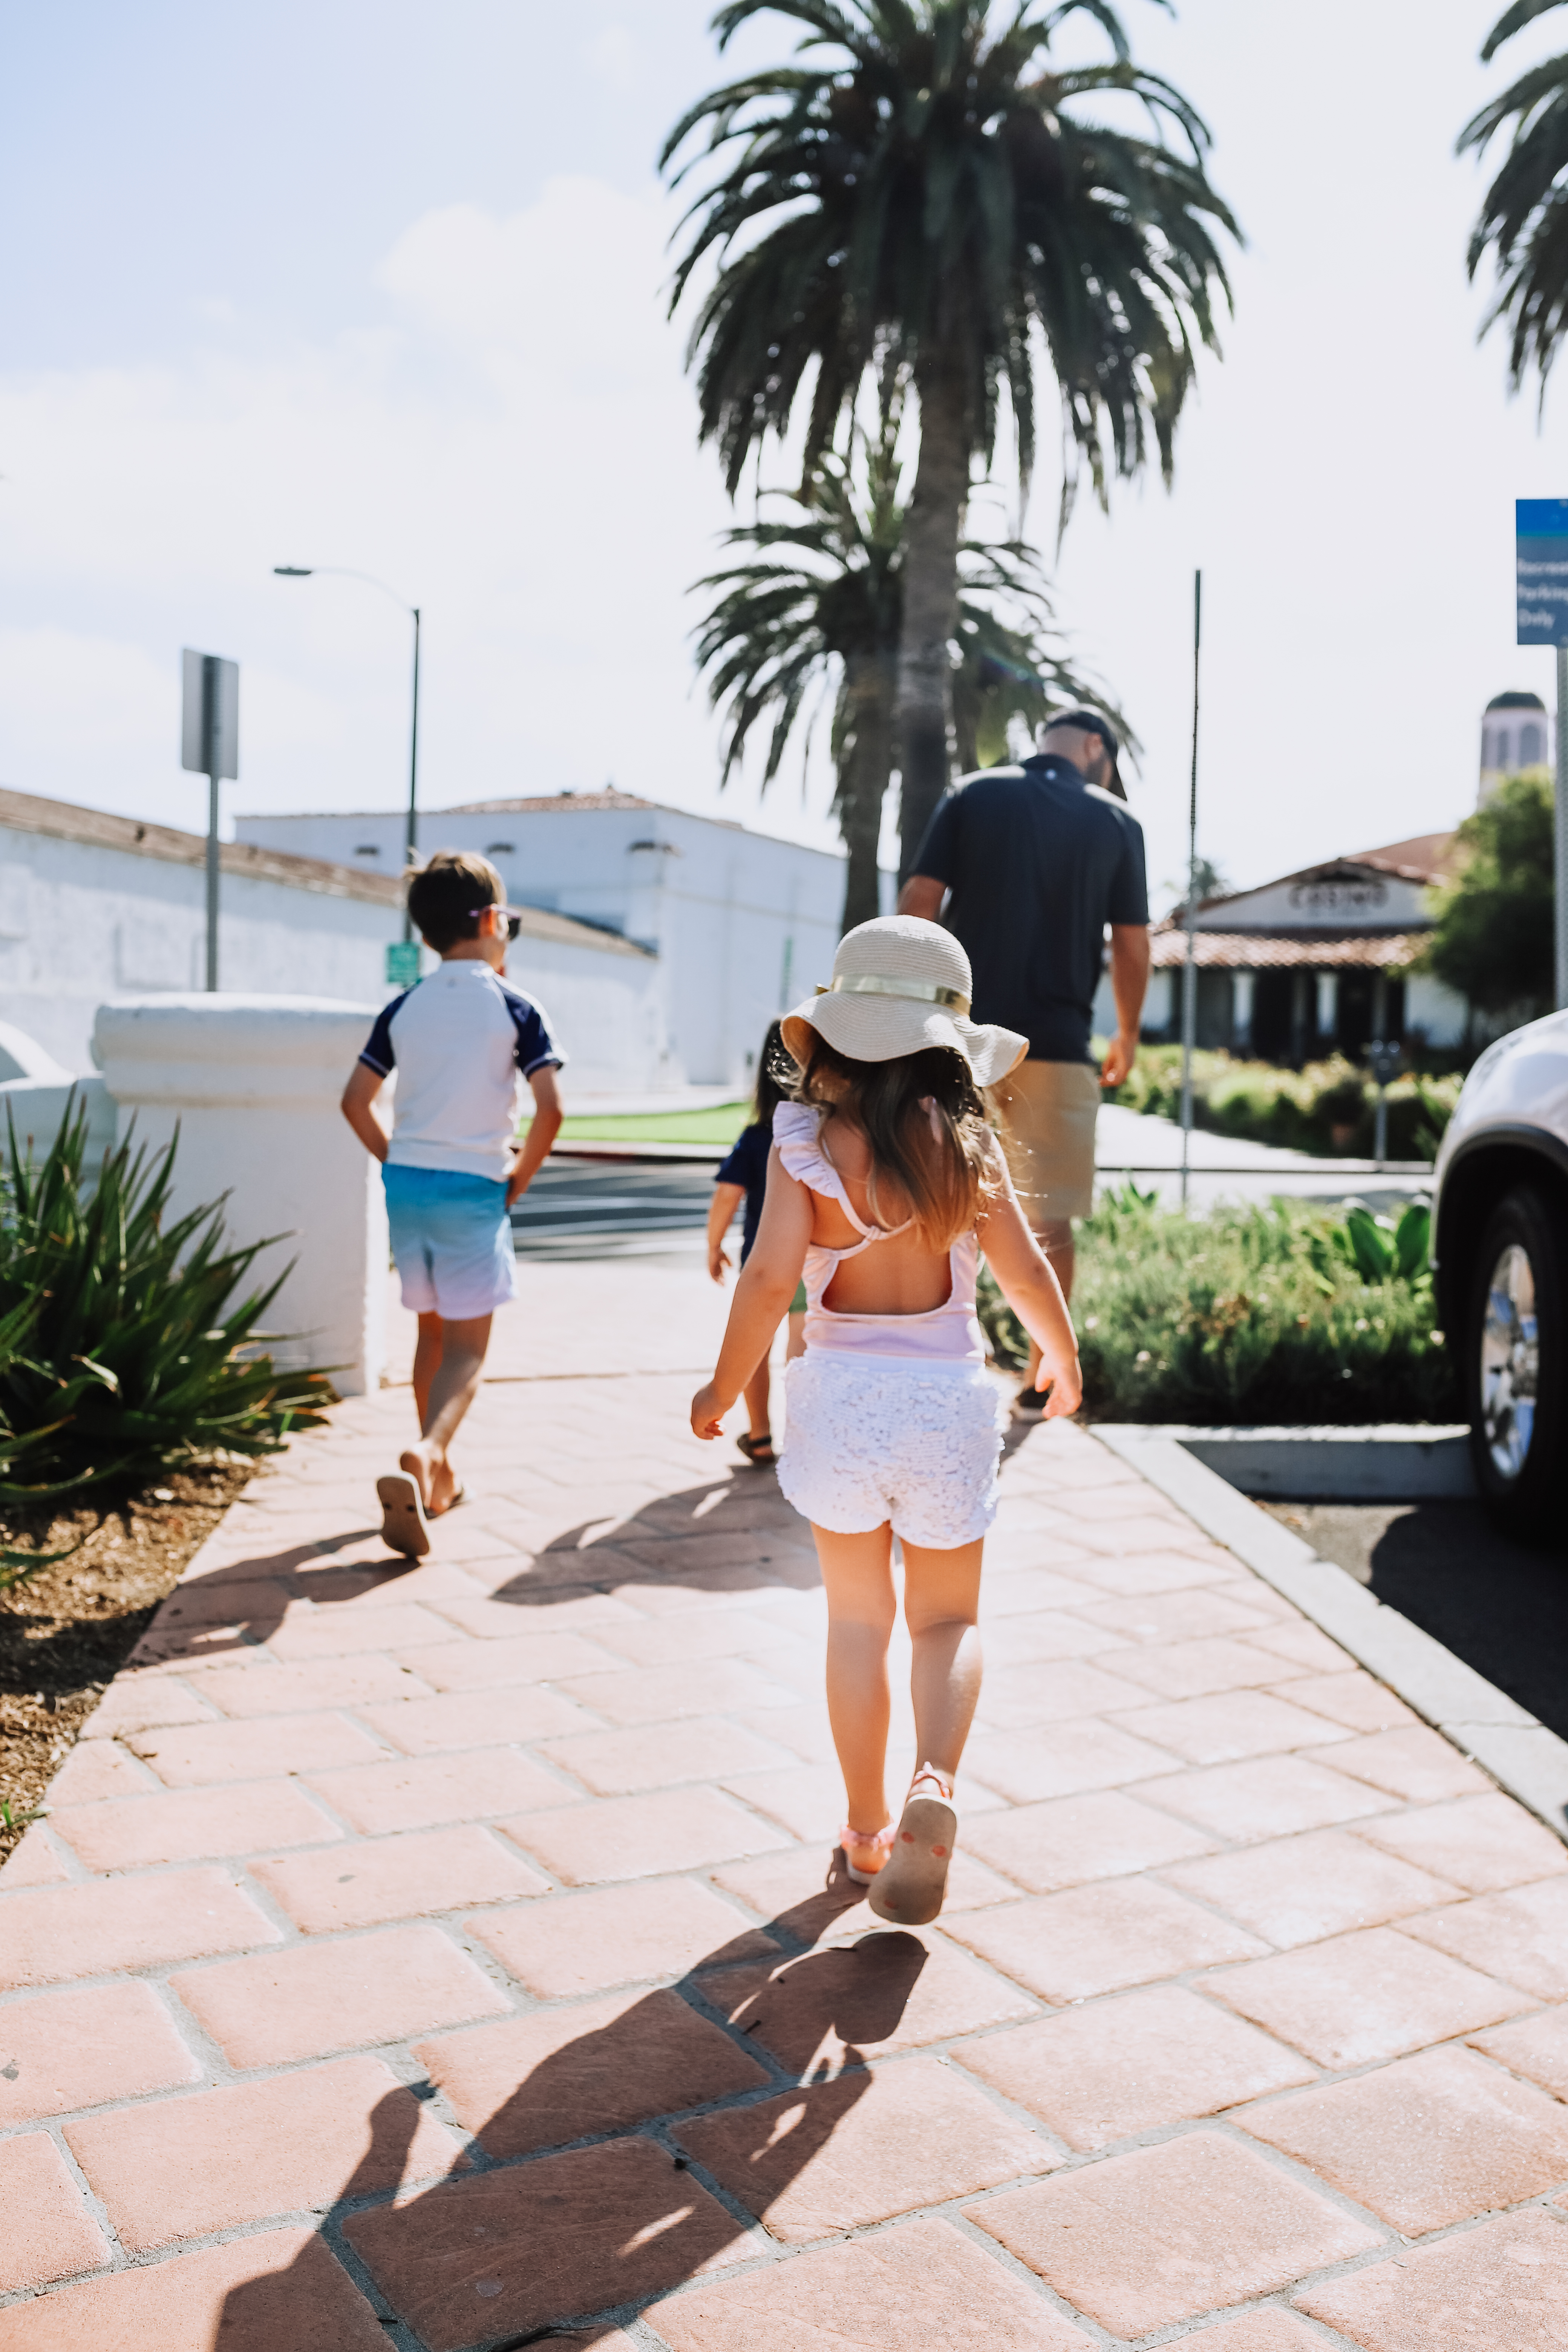 headed to breakfast in the beach city of san clemente, california | thelovedesignedlife.com #beachvacay #summertime #familytravel